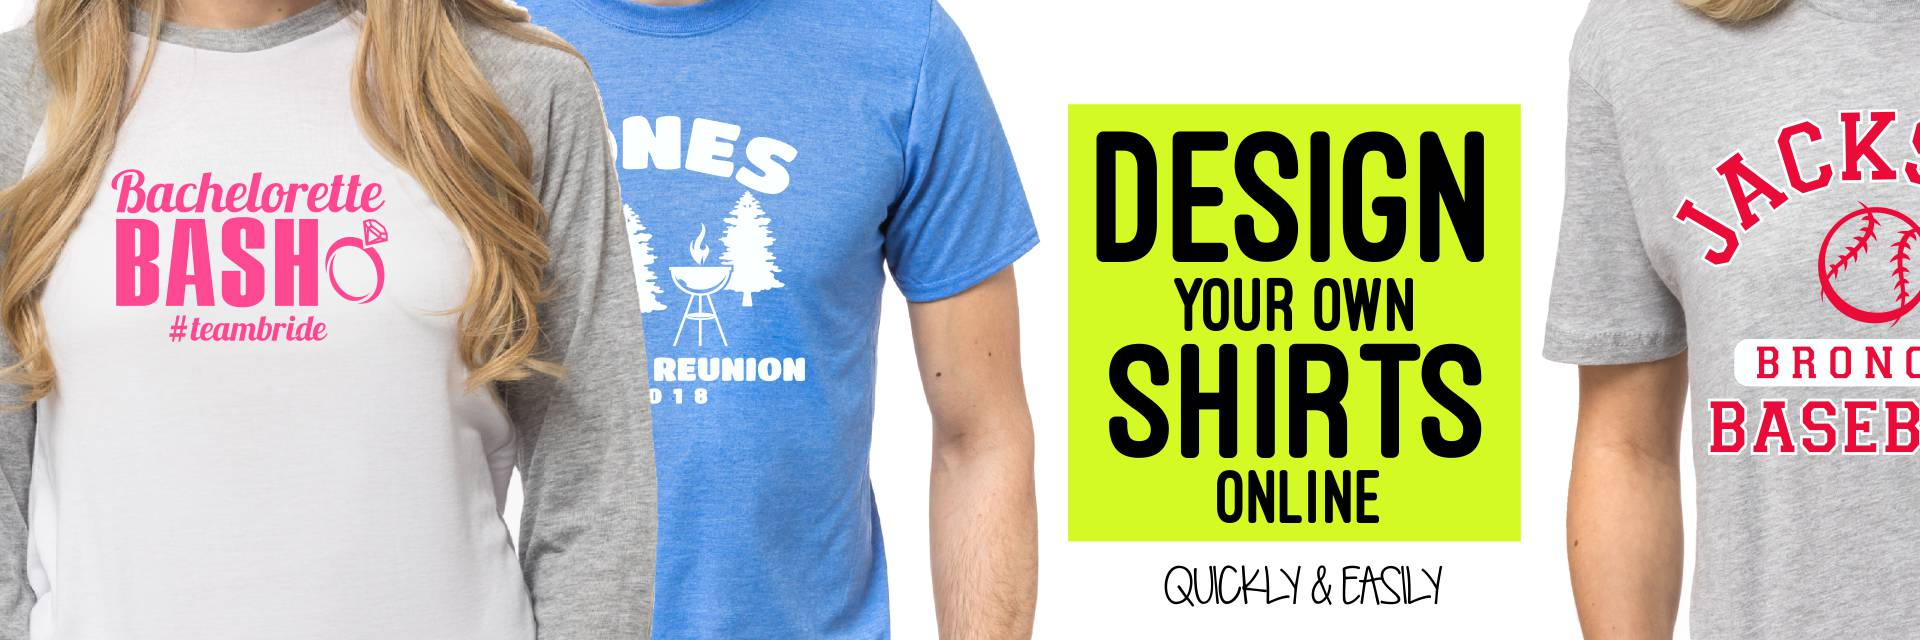 Design Your Own Shirts Online